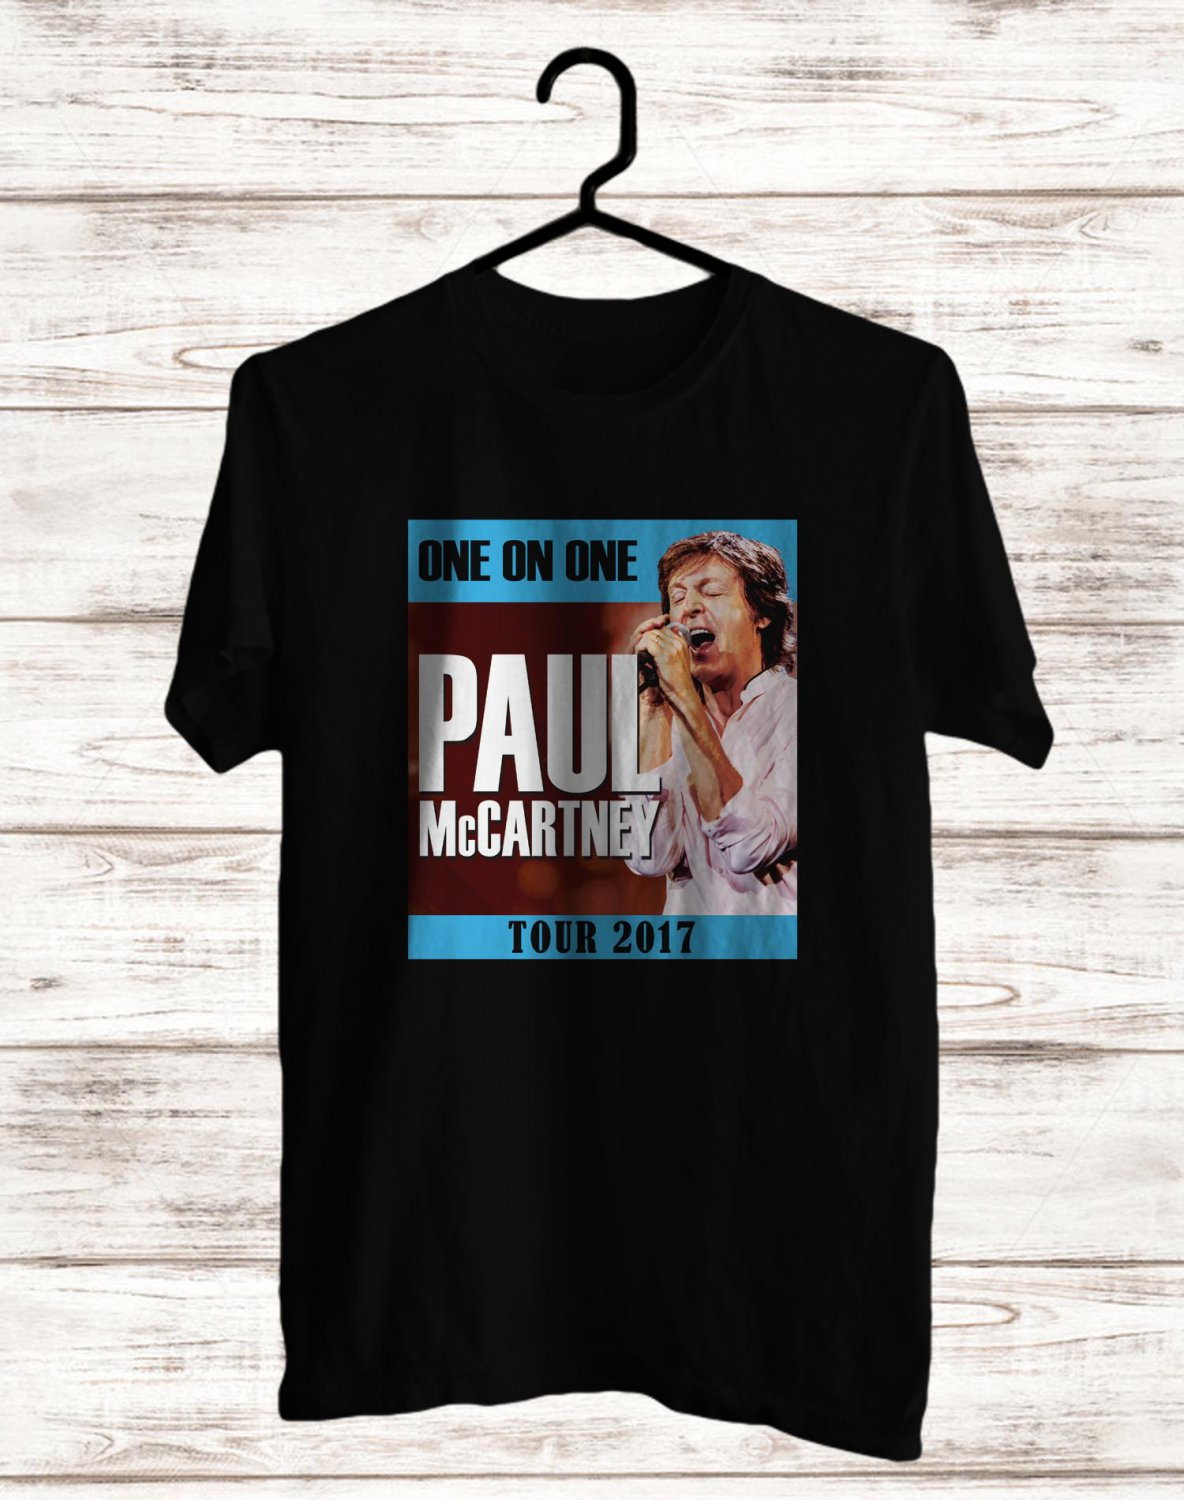 Paul McCartney One On One Tour 2017 Black Tee's  Front Side by Complexart